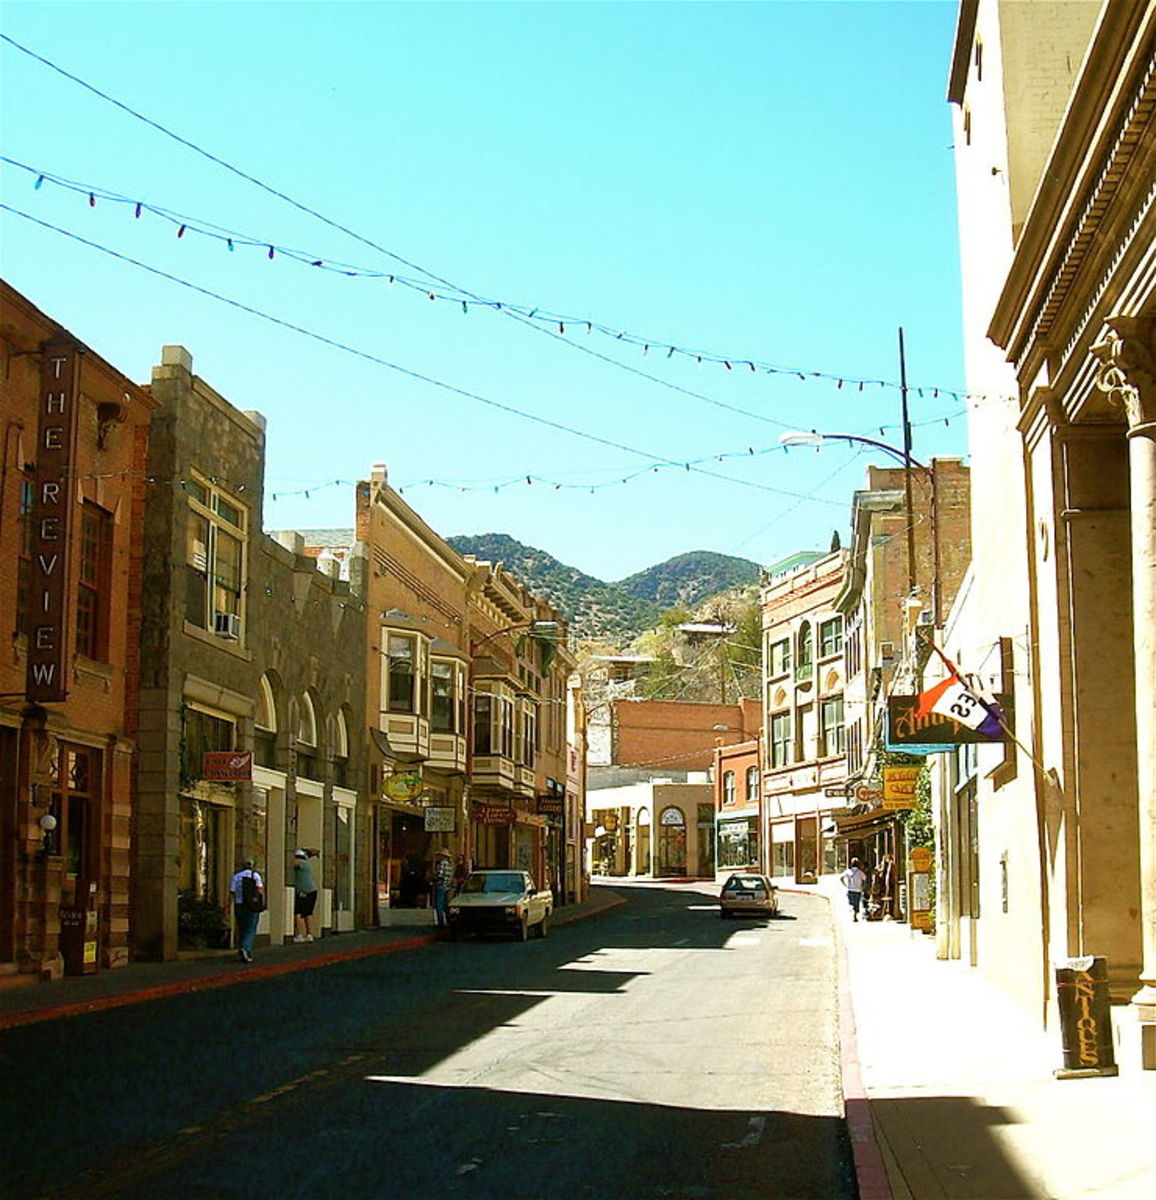 Bisbee, Arizona, Main Street - uploader Willjay at English Wikipedia (Transferred fromen.wikipediato Commons.) [GFDL (http://www.gnu.org/copyleft/fdl.html) or CC-BY-SA-3.0 (http://creativecommons.org/licenses/by-sa/3.0/)], via Wikimedia Commons